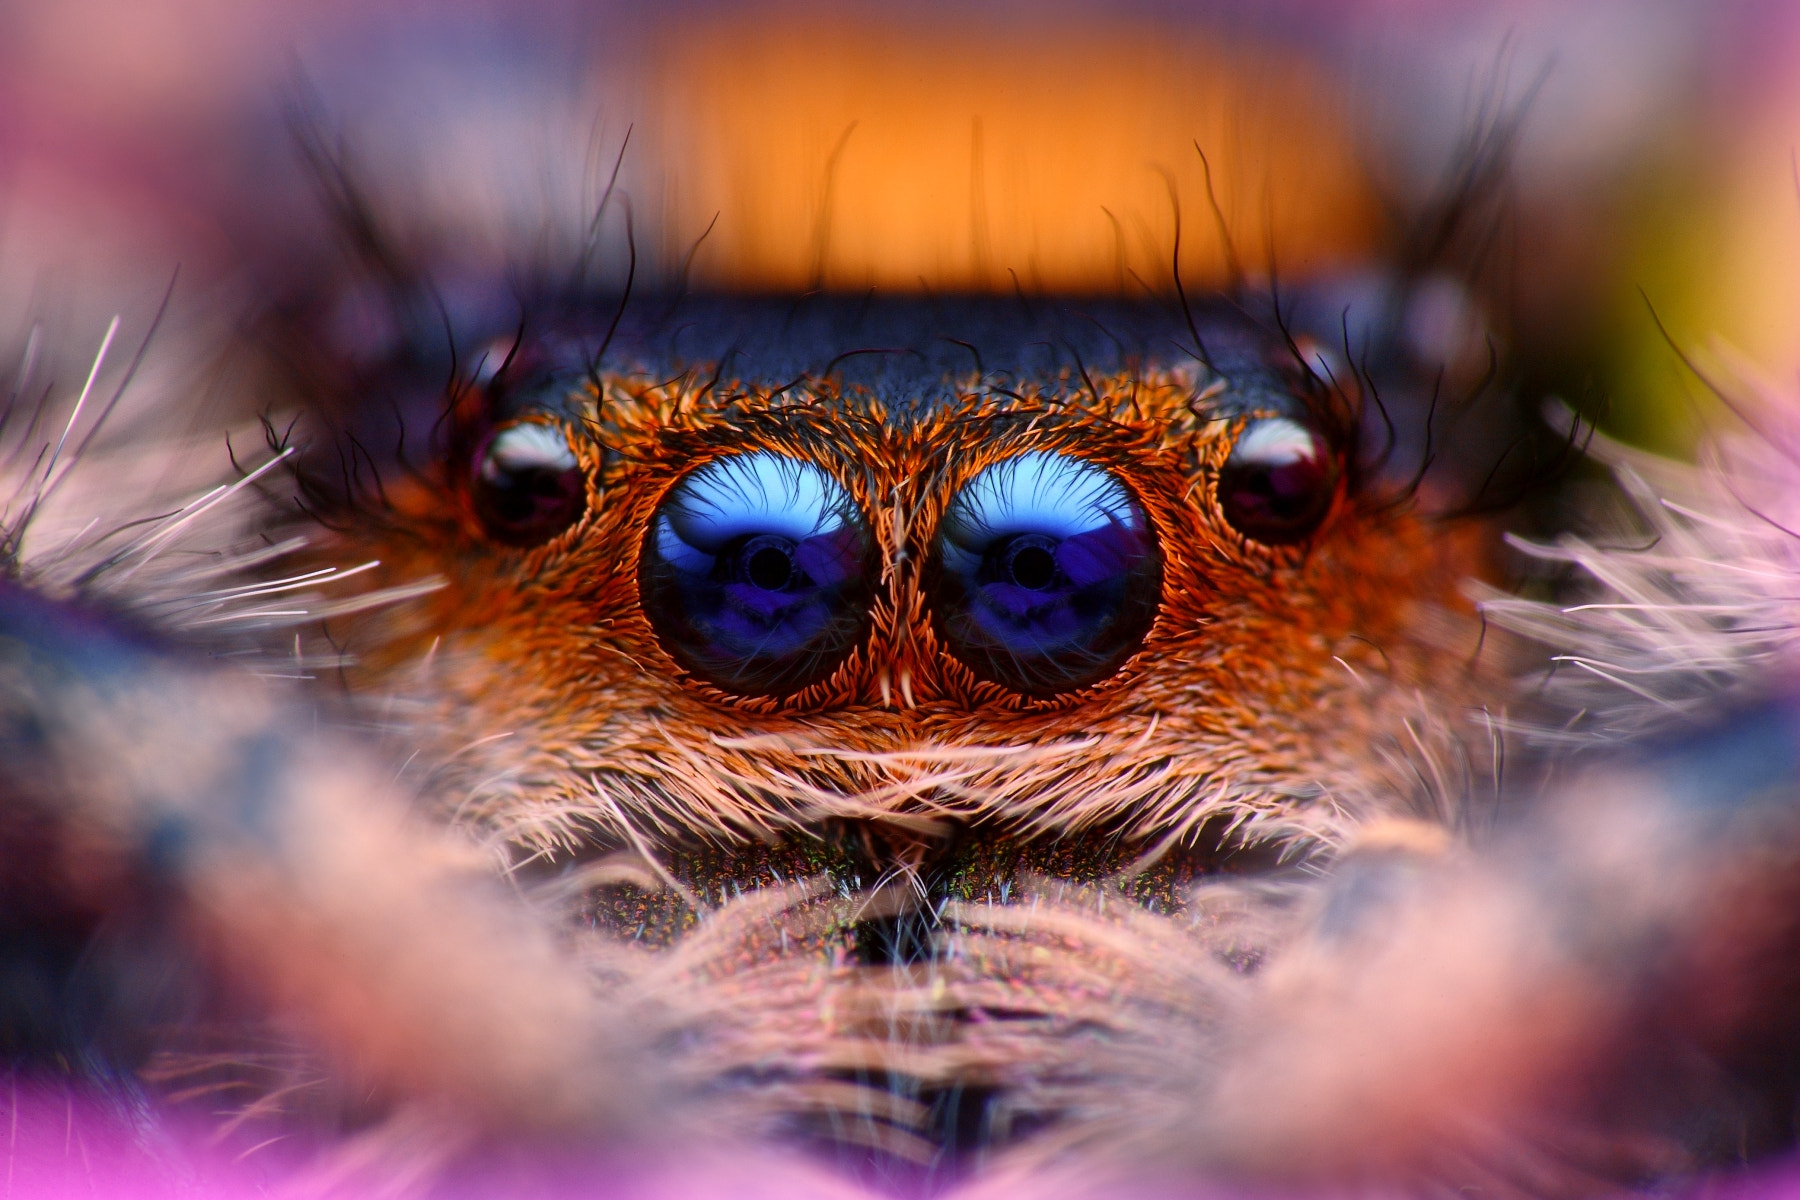 Photograph Hypnotic (Phidippus regius) by Tomas Rak on 500px